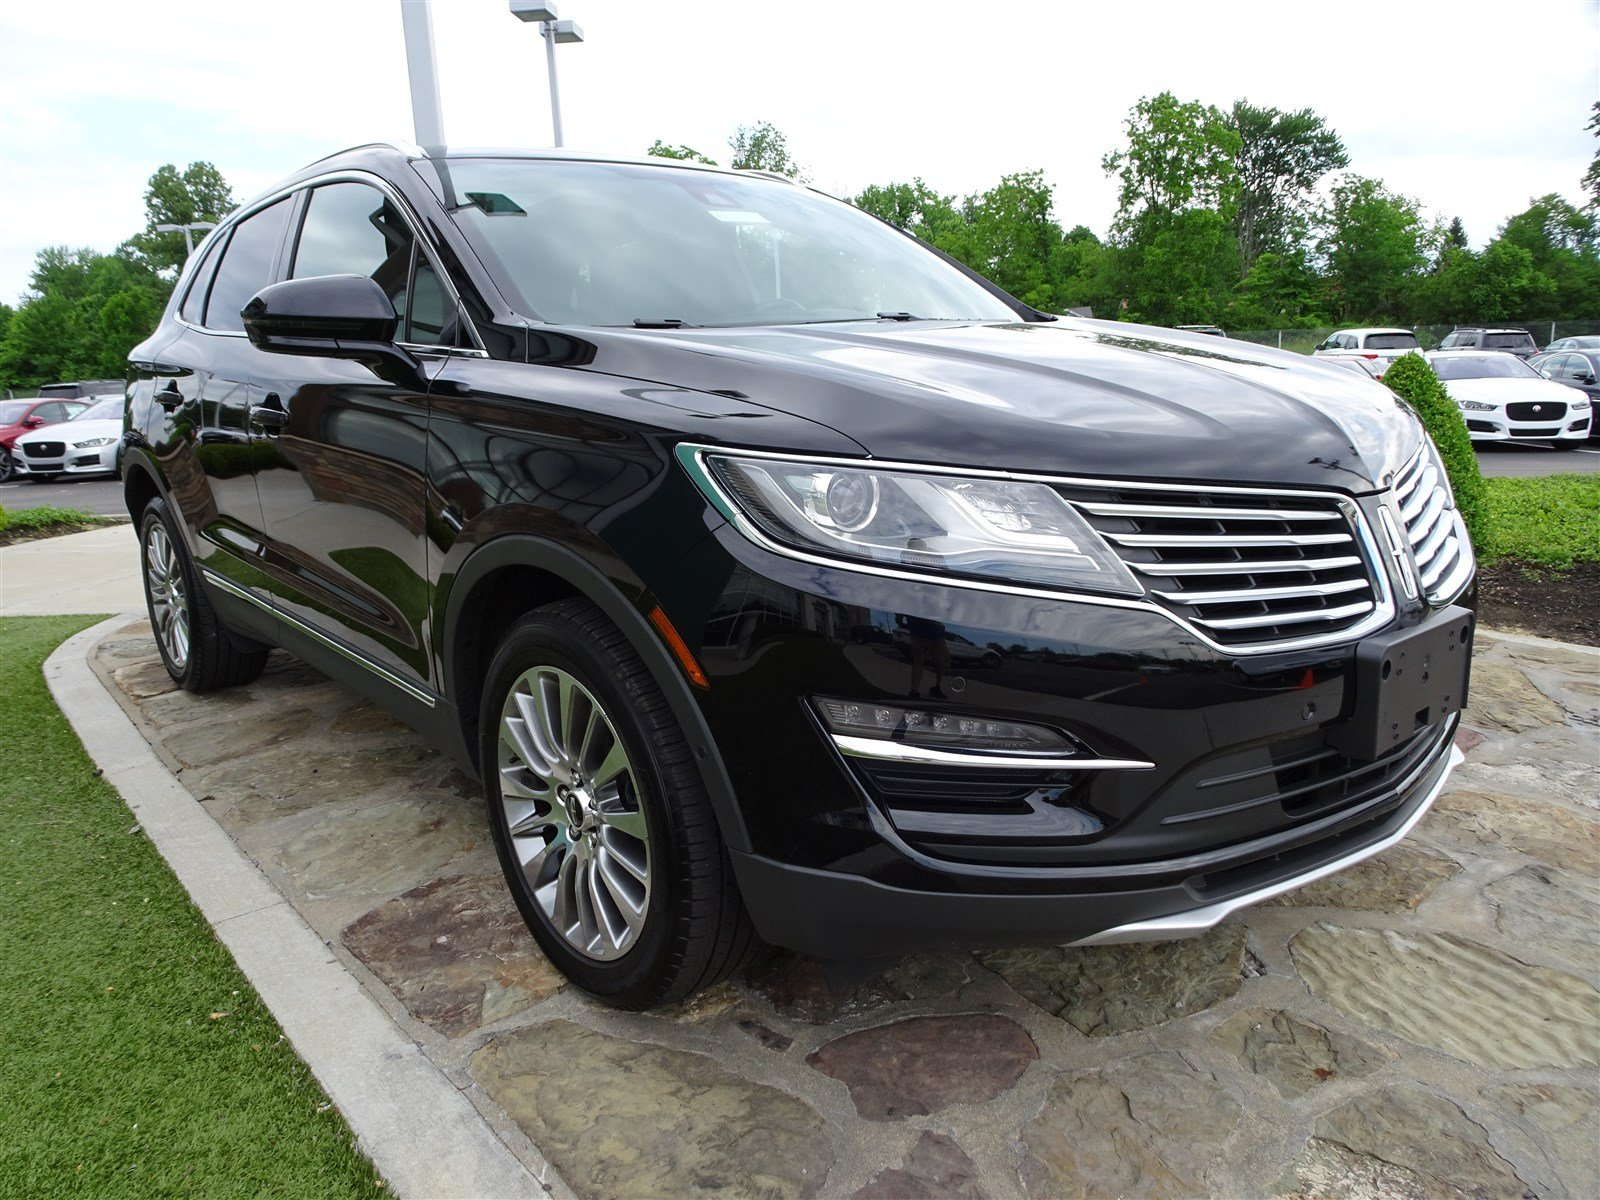 cincinnati watch in lincoln cadillac performance dominates srx ohio new mkc montgomery dealer